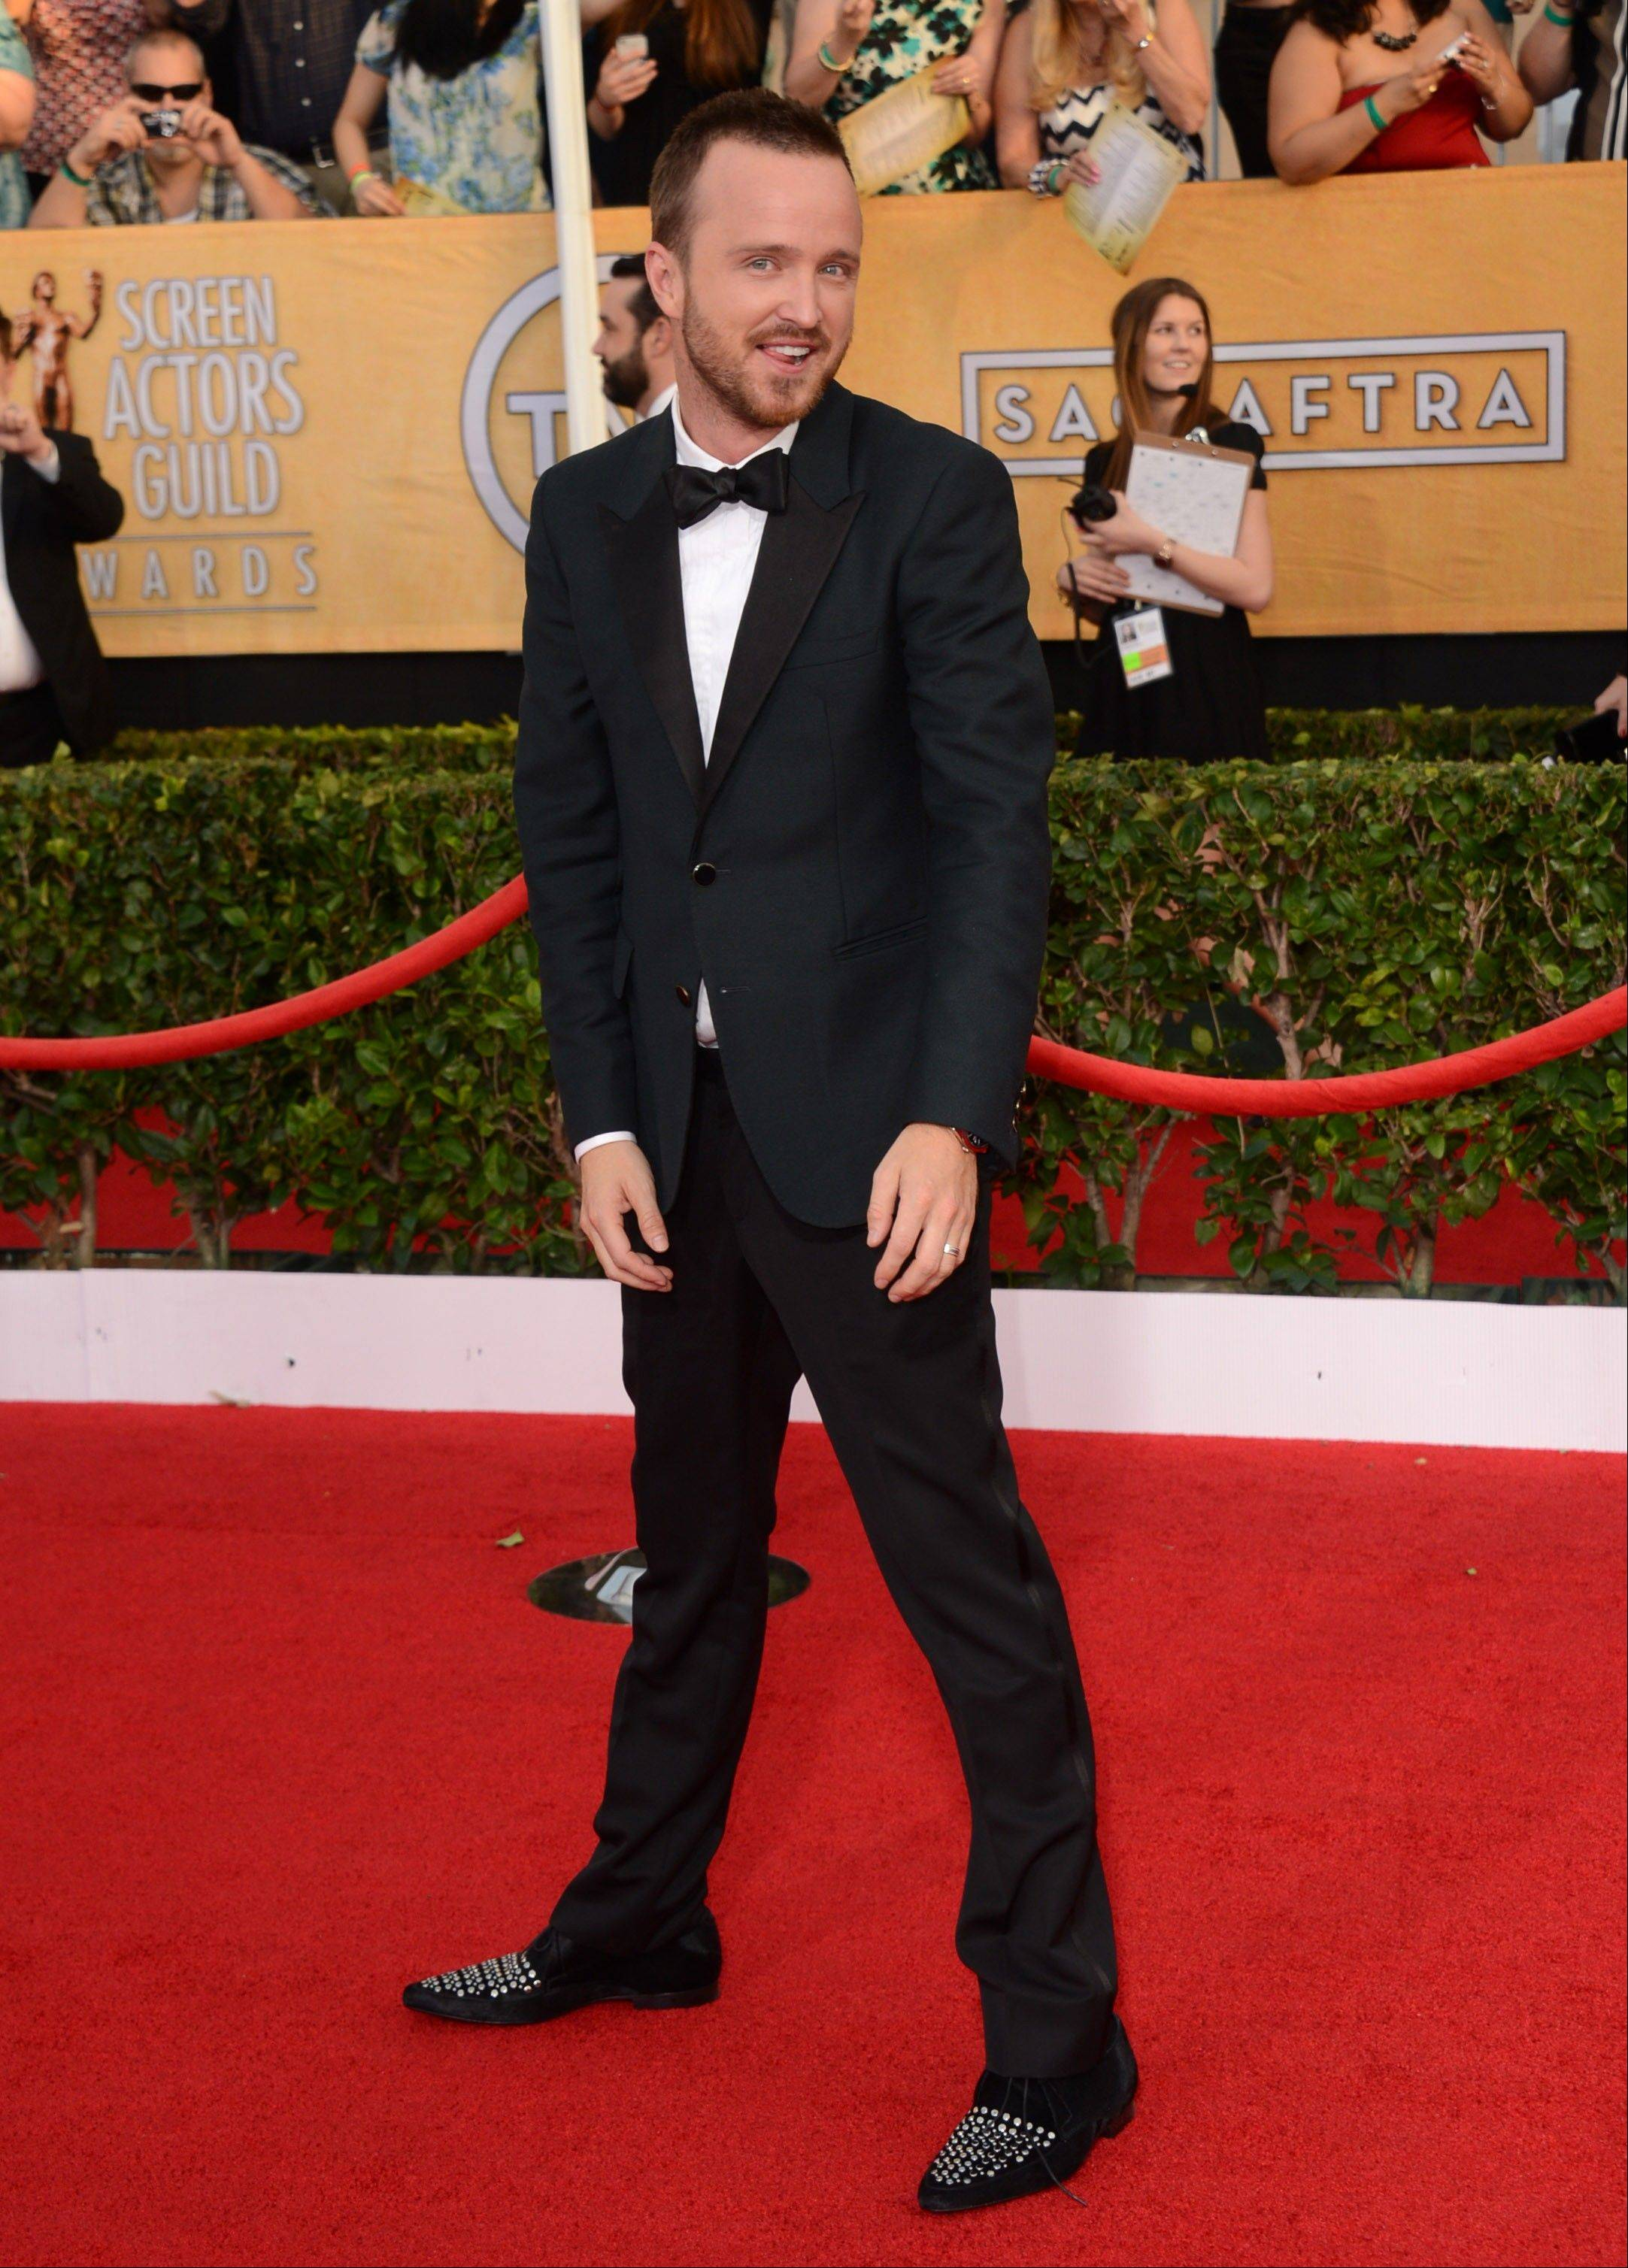 Aaron Paul gets a little playful as he walks the red carpet at the SAG Awards.